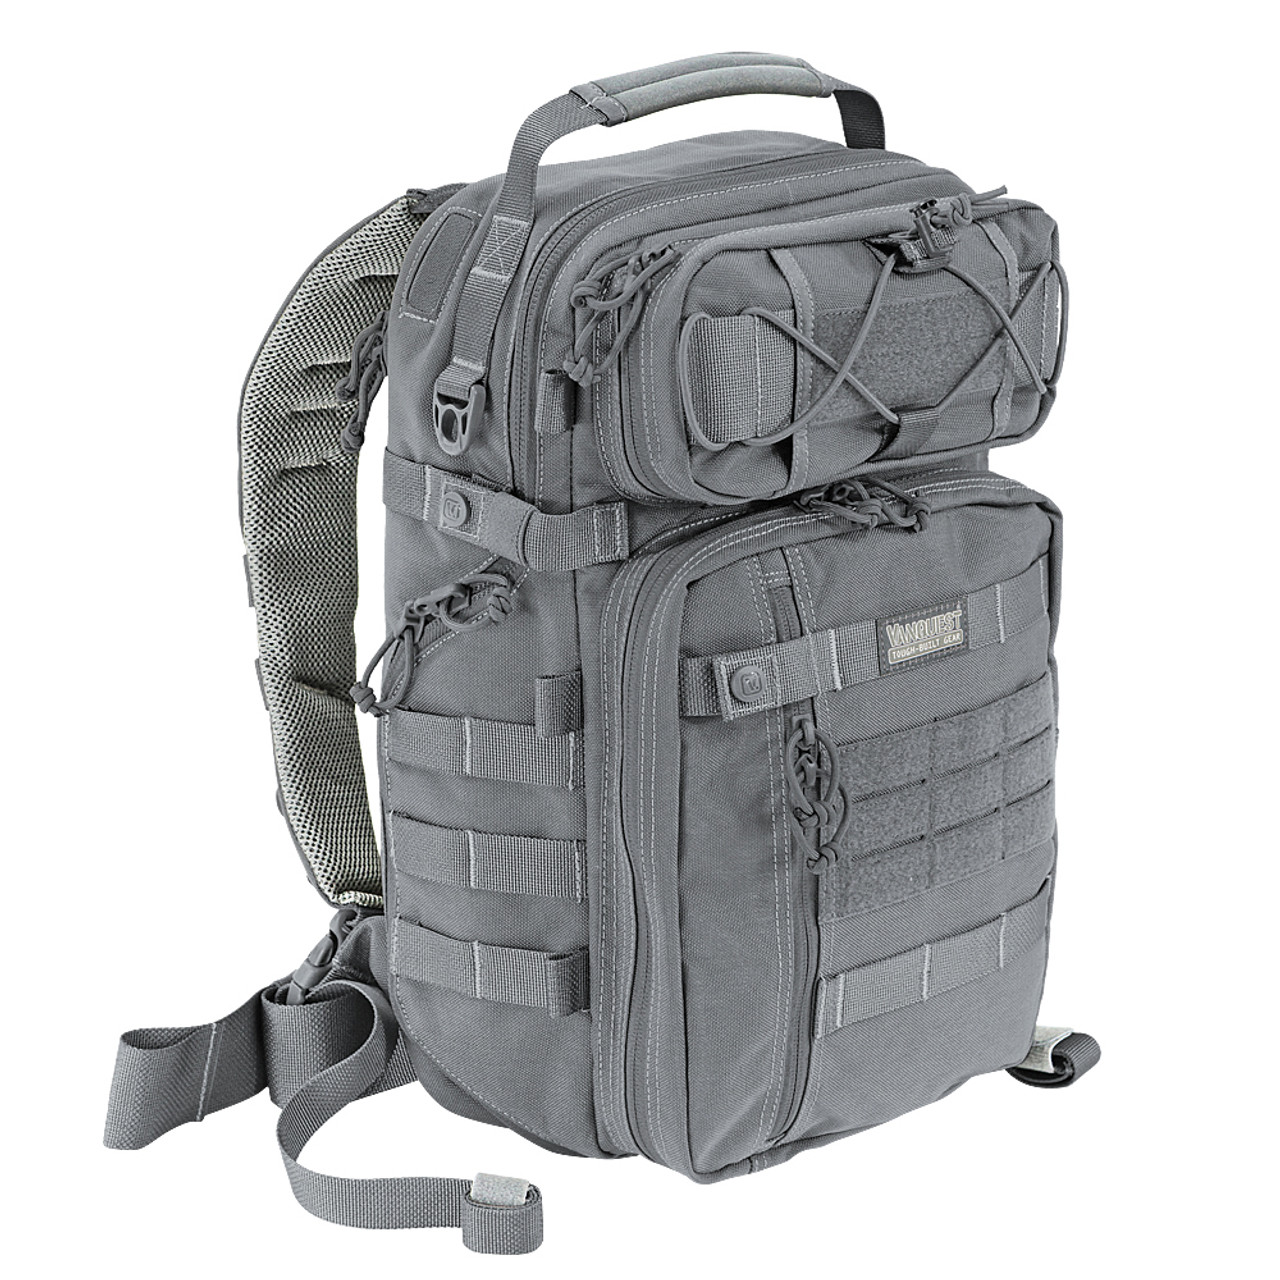 fe011c608c95 TRIDENT-20 (Gen-2) Backpack - VANQUEST: TOUGH-BUILT GEAR